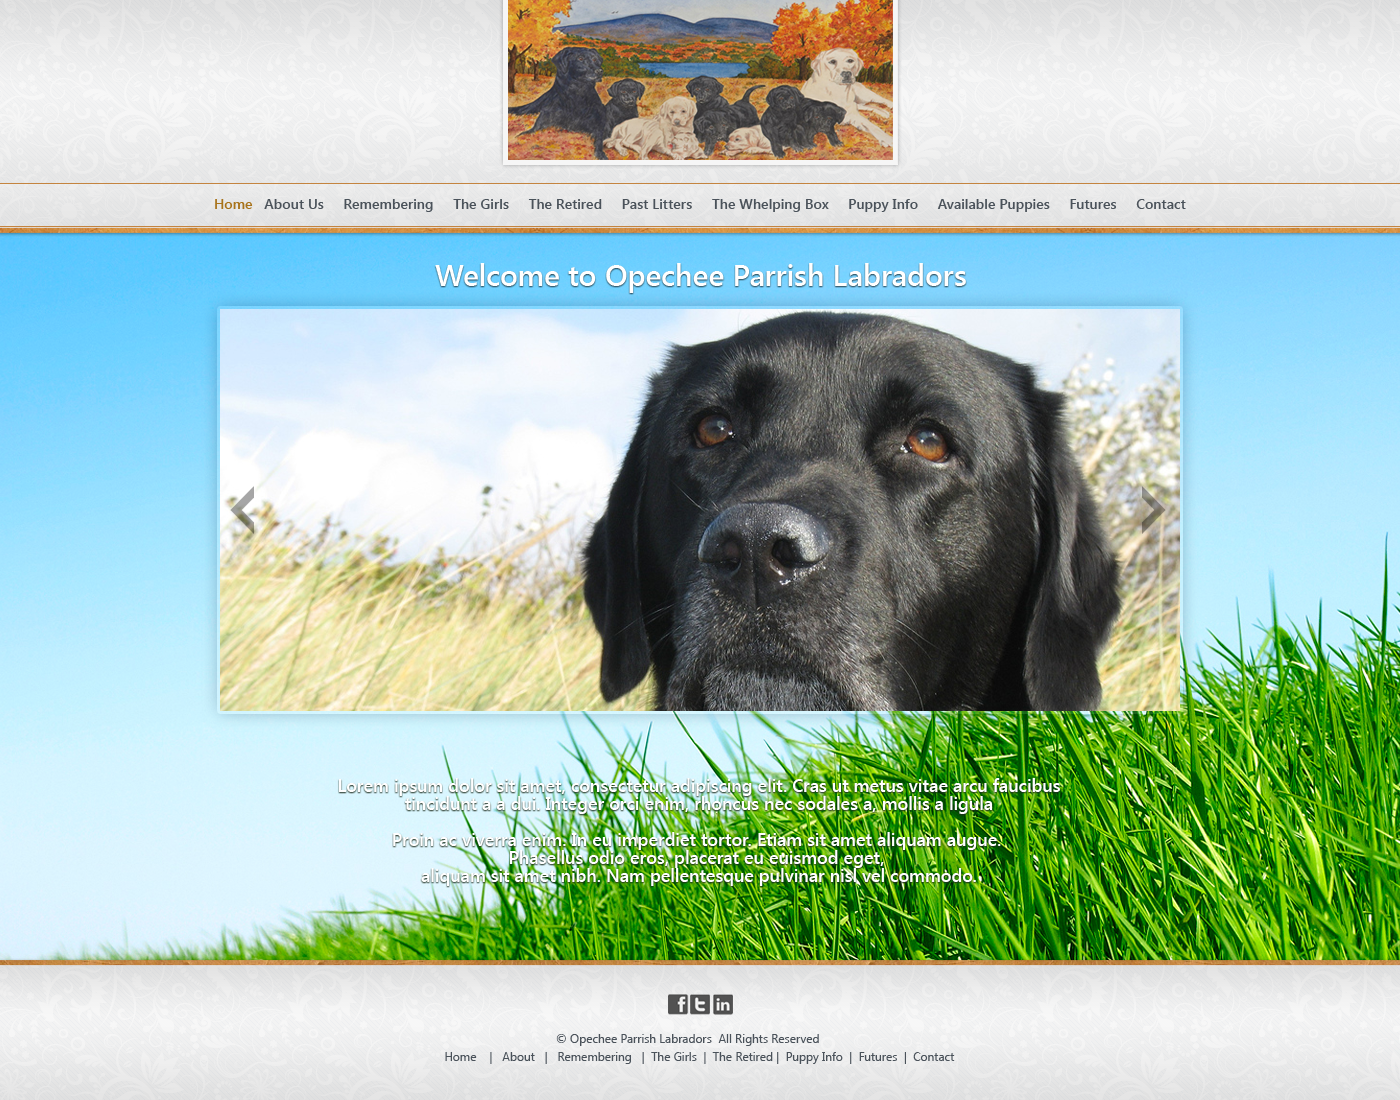 Help Opechee Parrish Labradors with a new website design